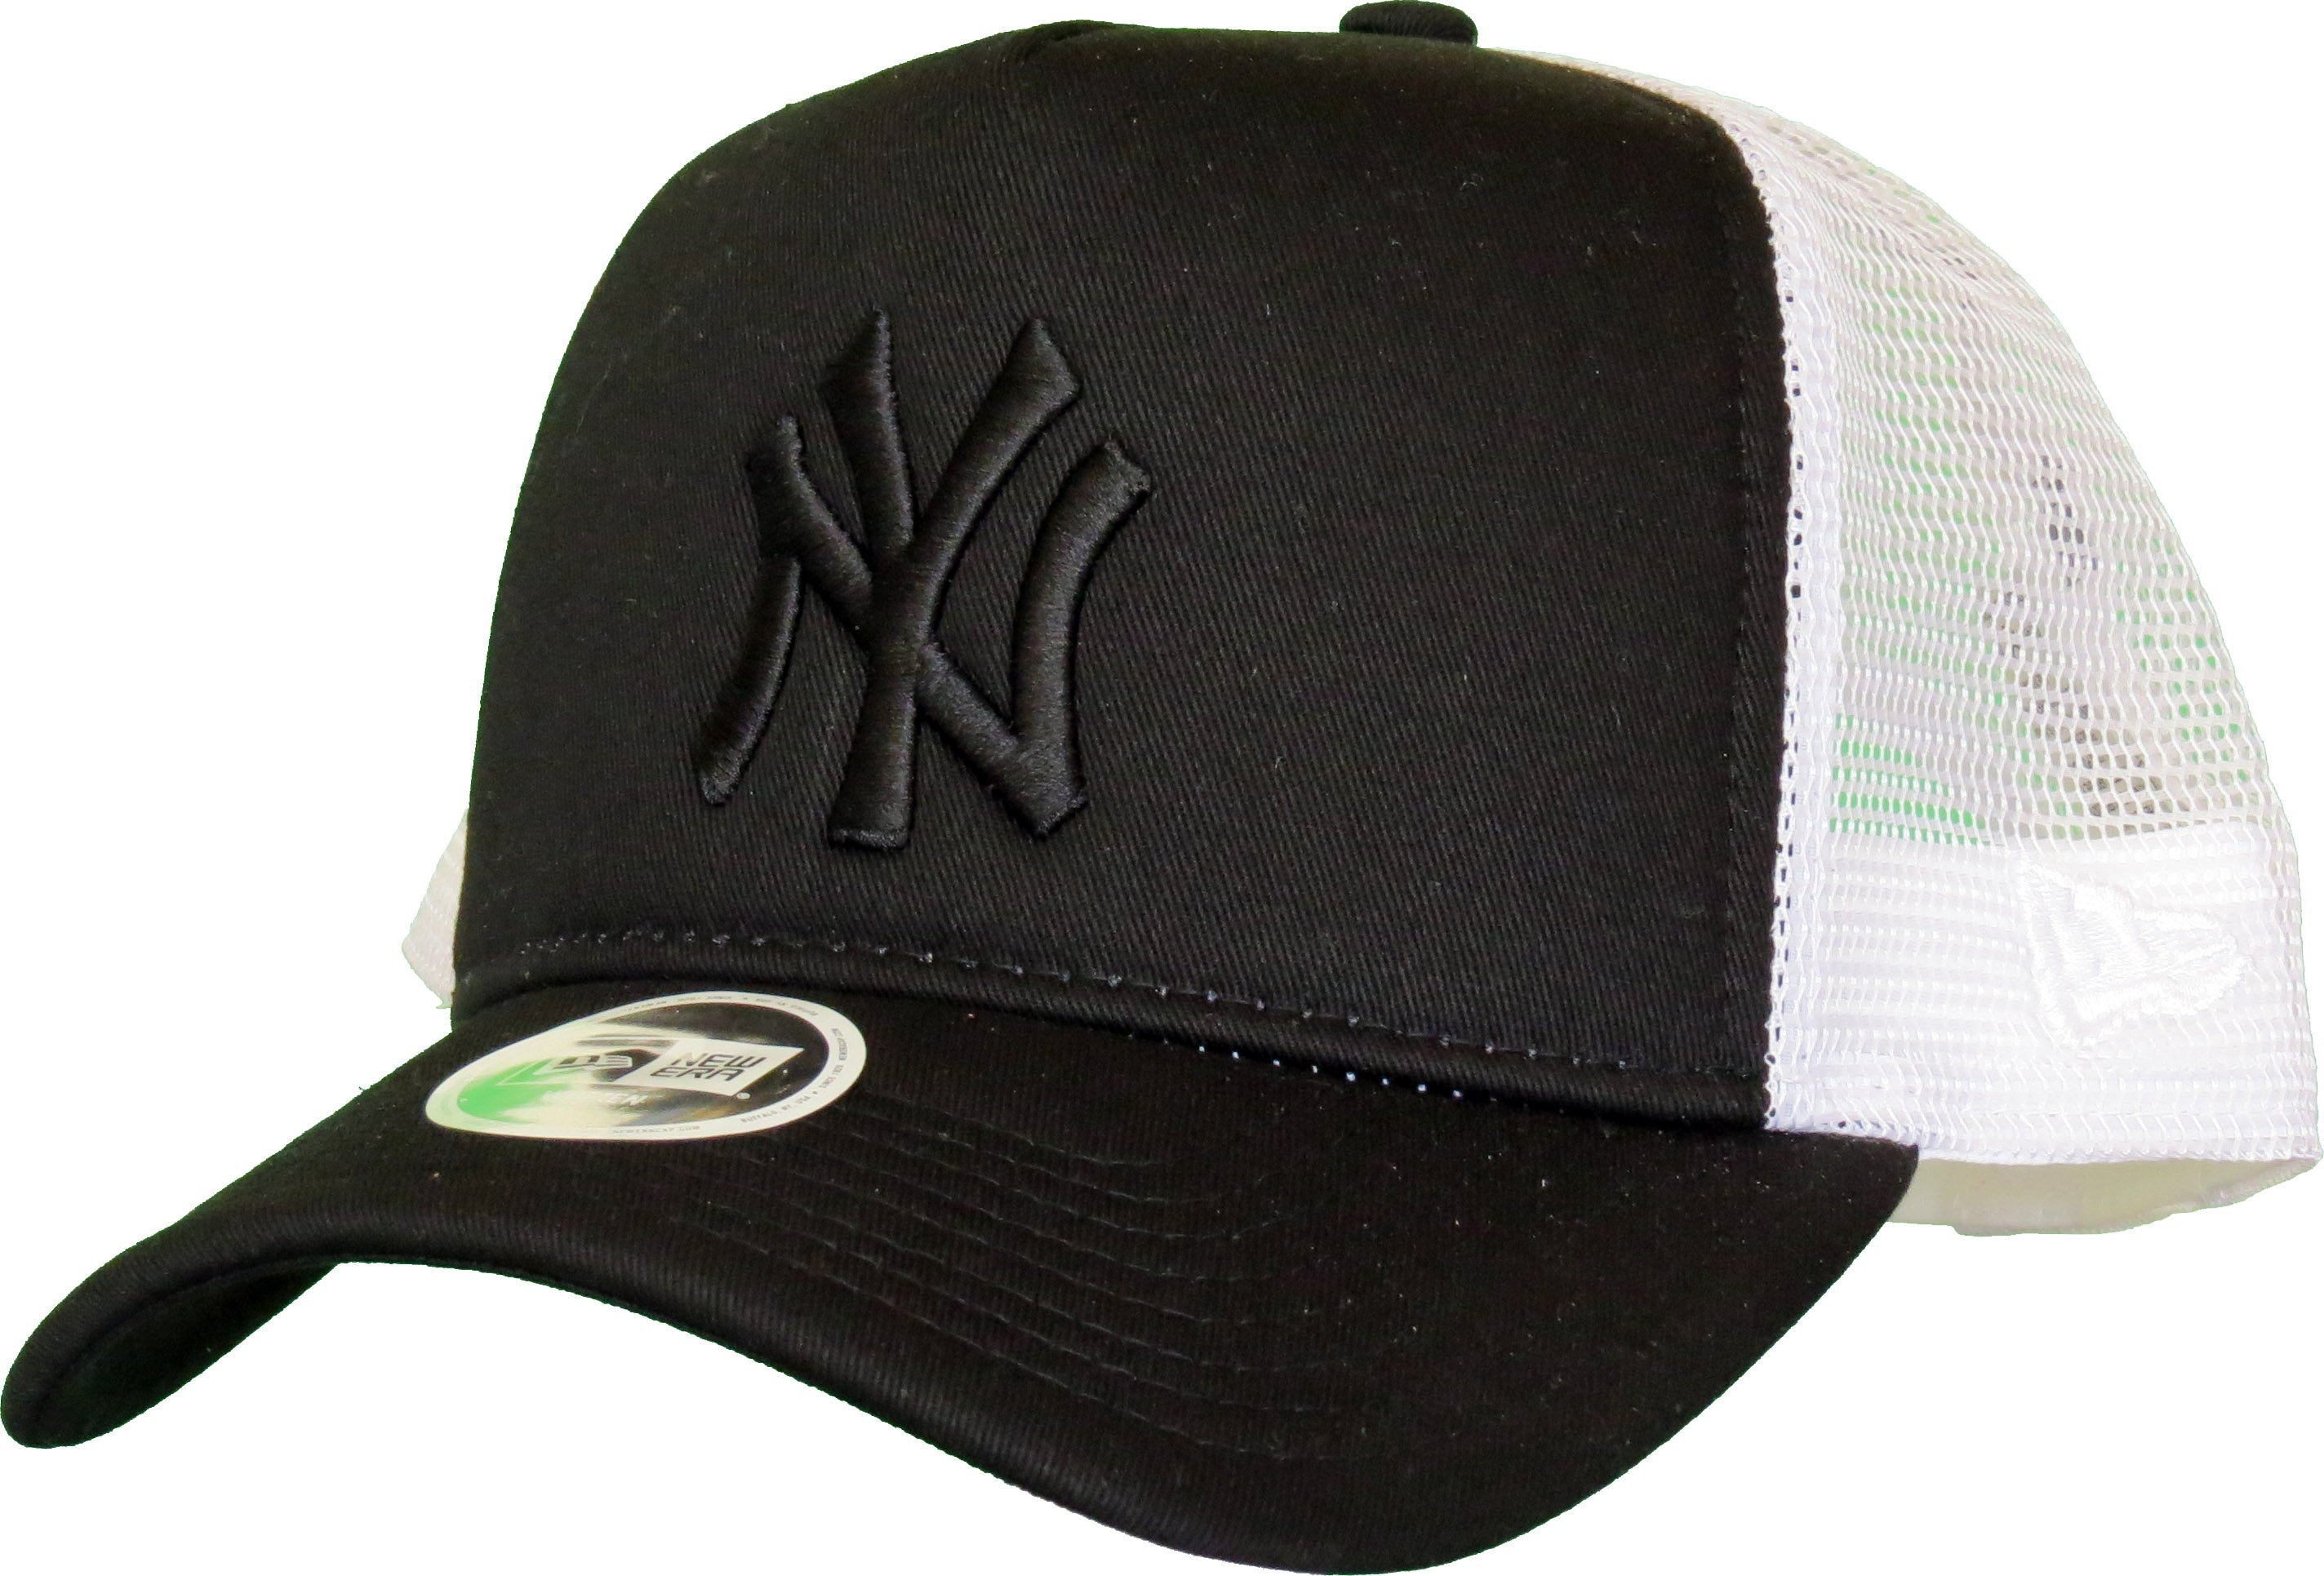 discount new york yankees hat lids fd0b0 8af0e 4a8c9102898